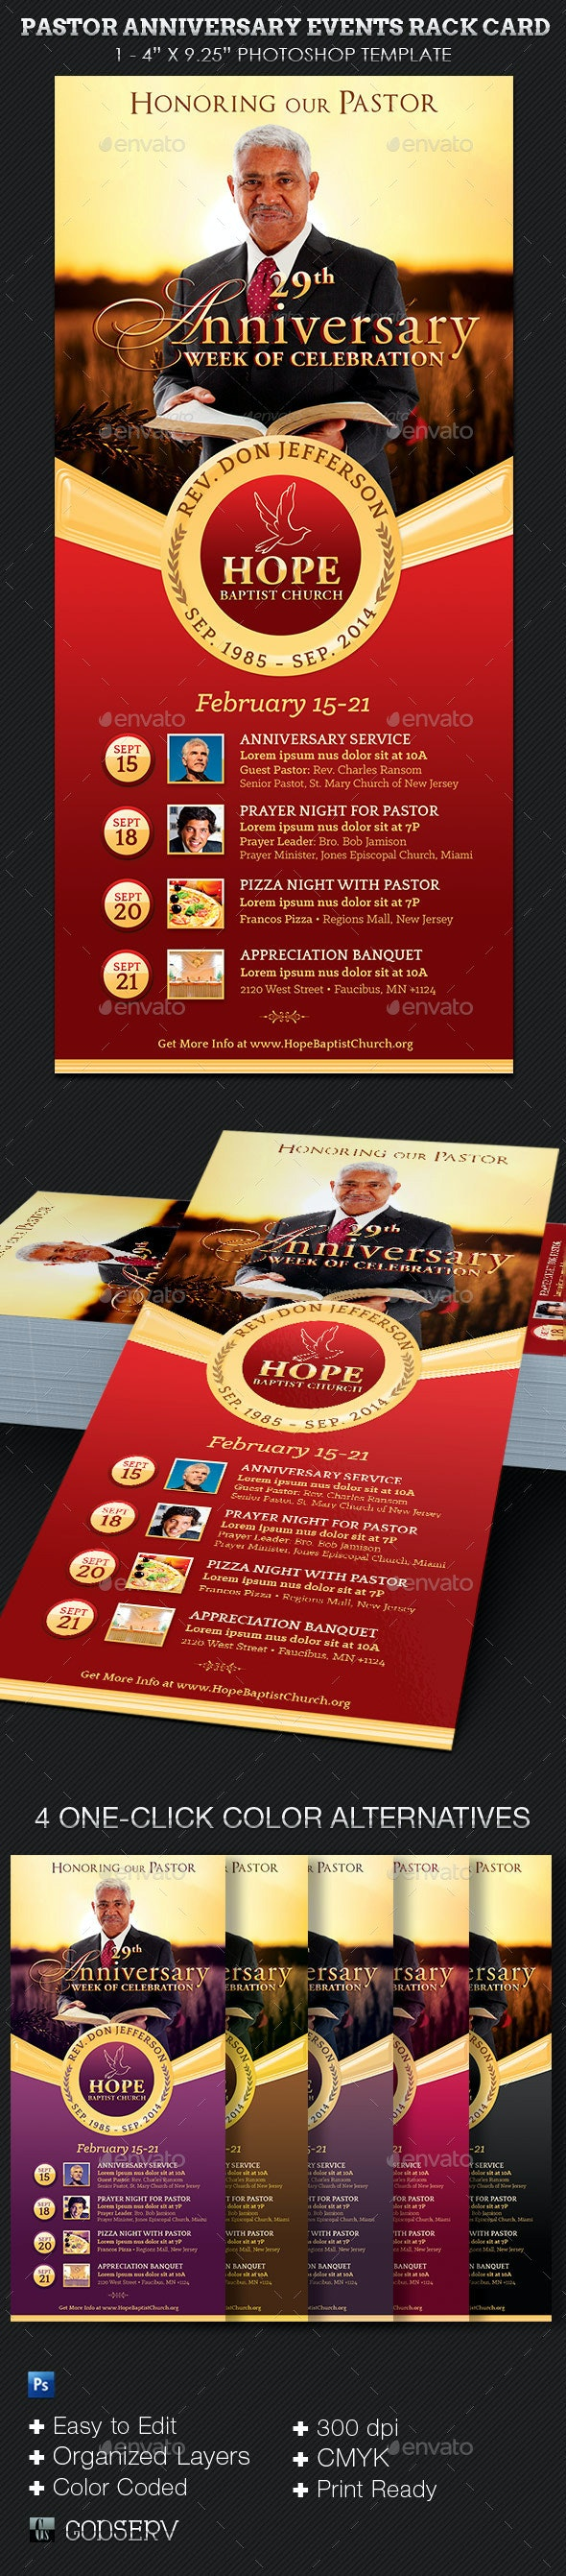 Pastor Anniversary Events Rack Card Template - Church Flyers